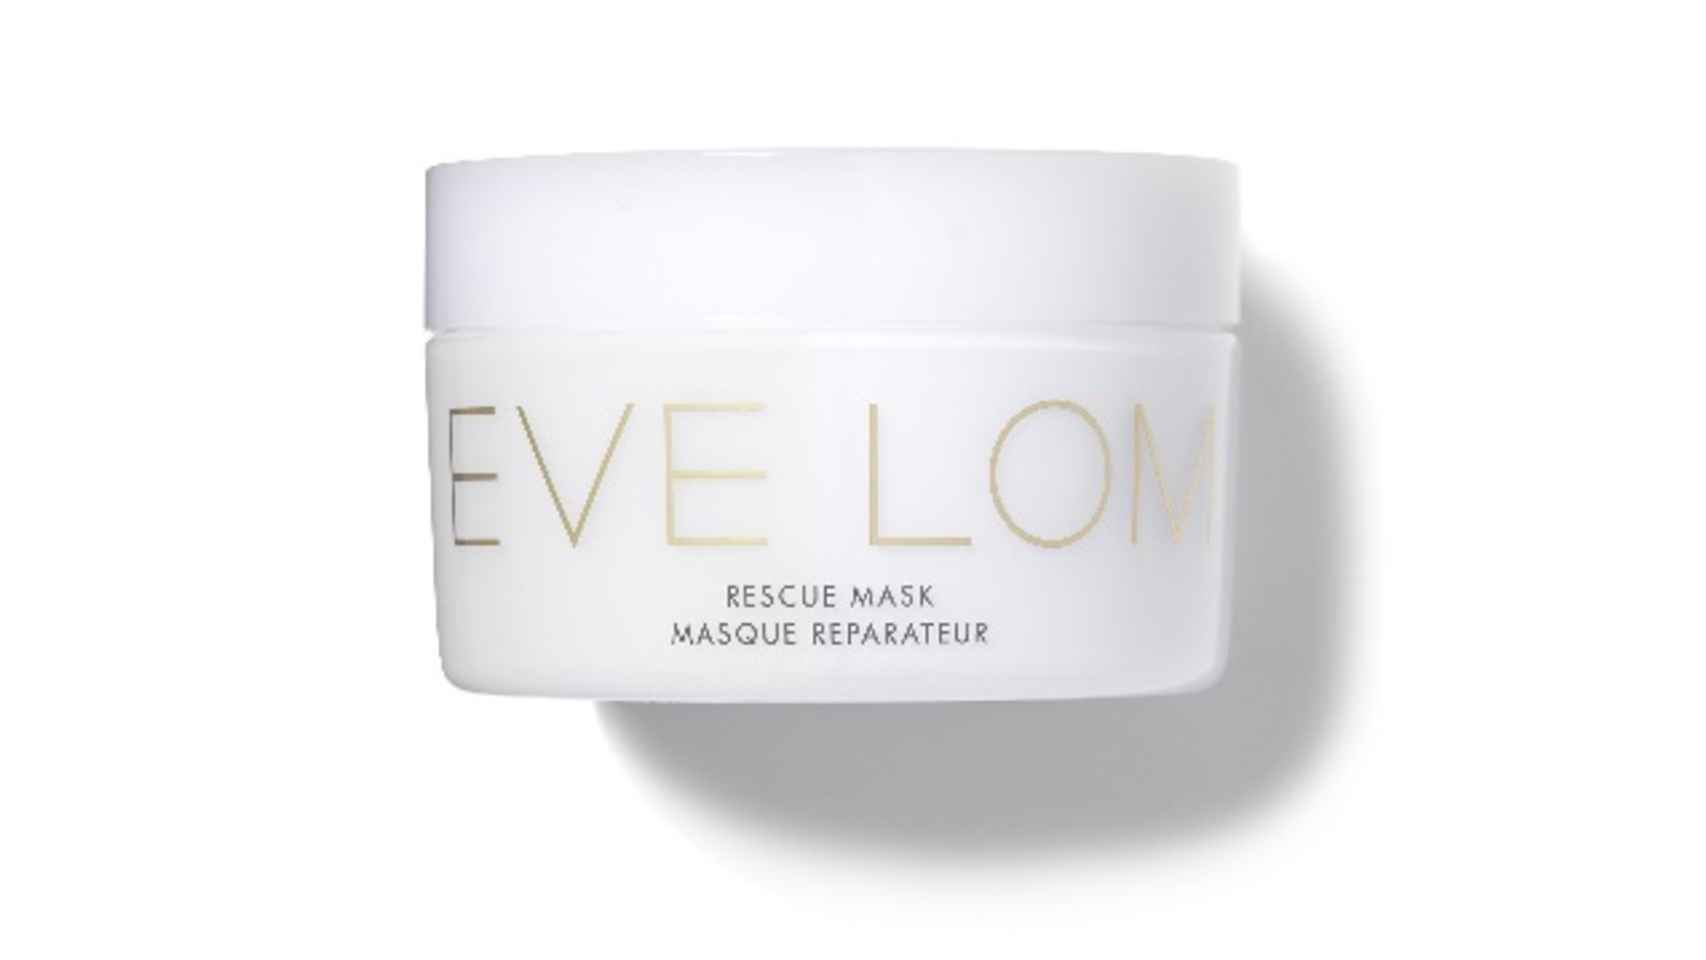 Rescue Mask de Eve Loom.